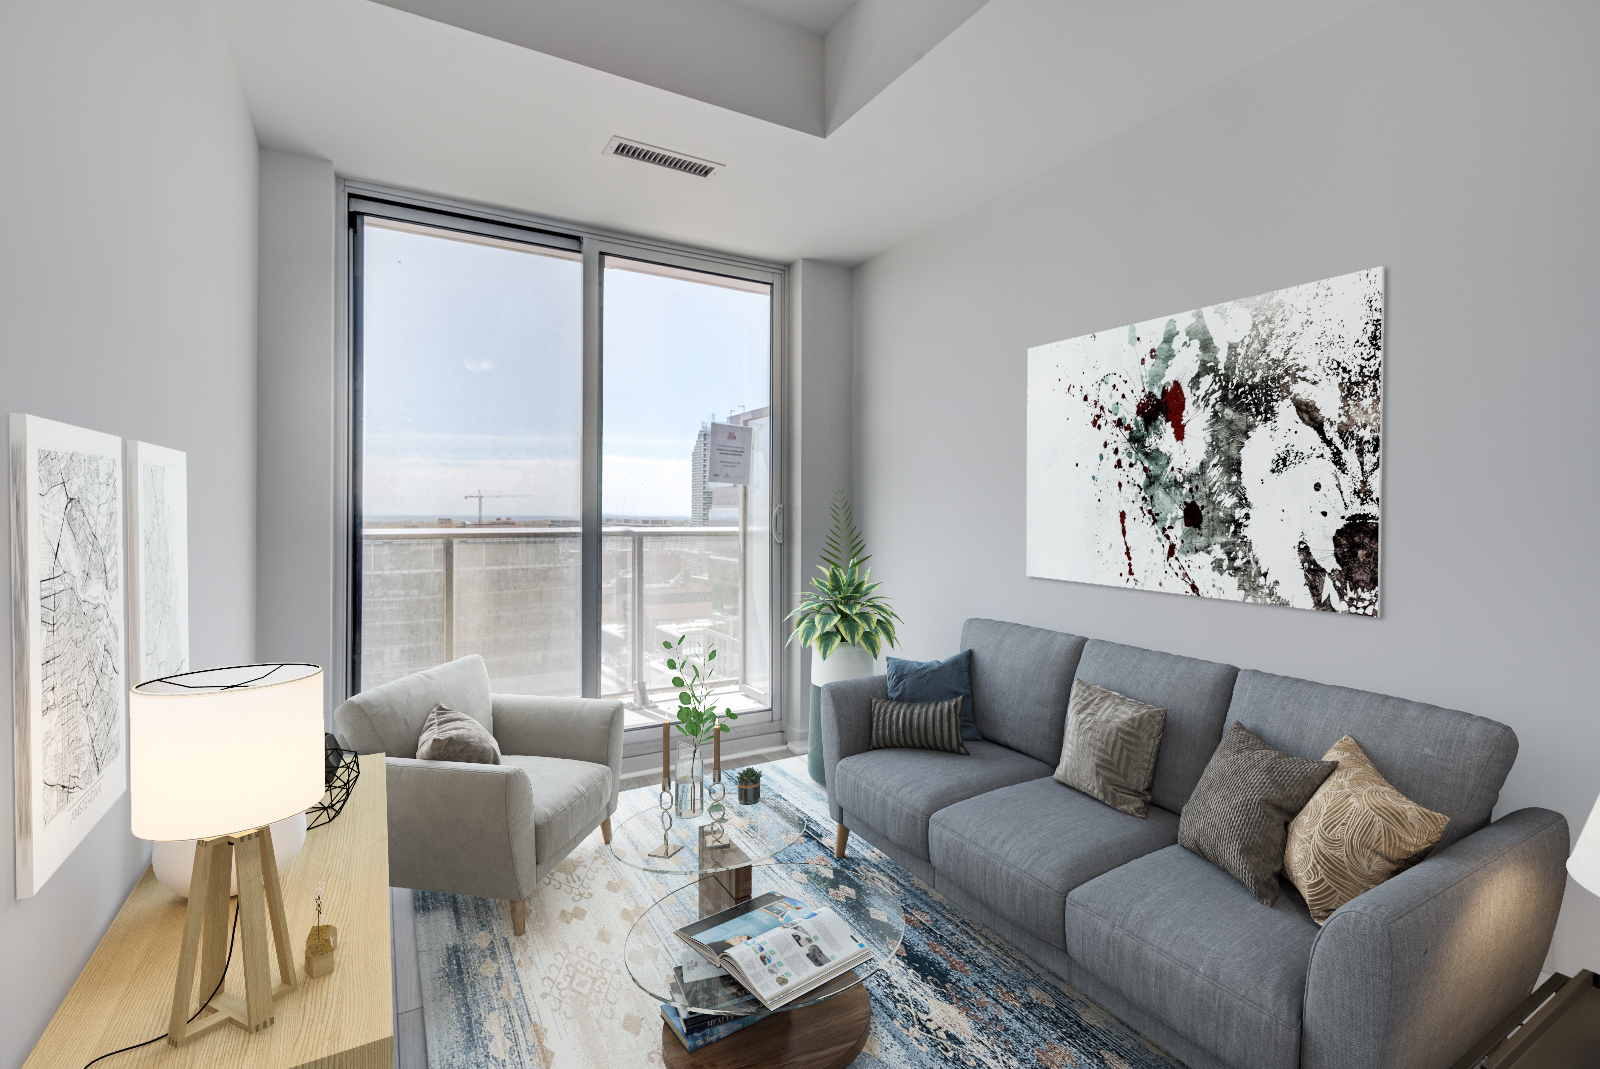 120 Parliament St Unit 1610 living room with 3D furniture, including sofa and tables.